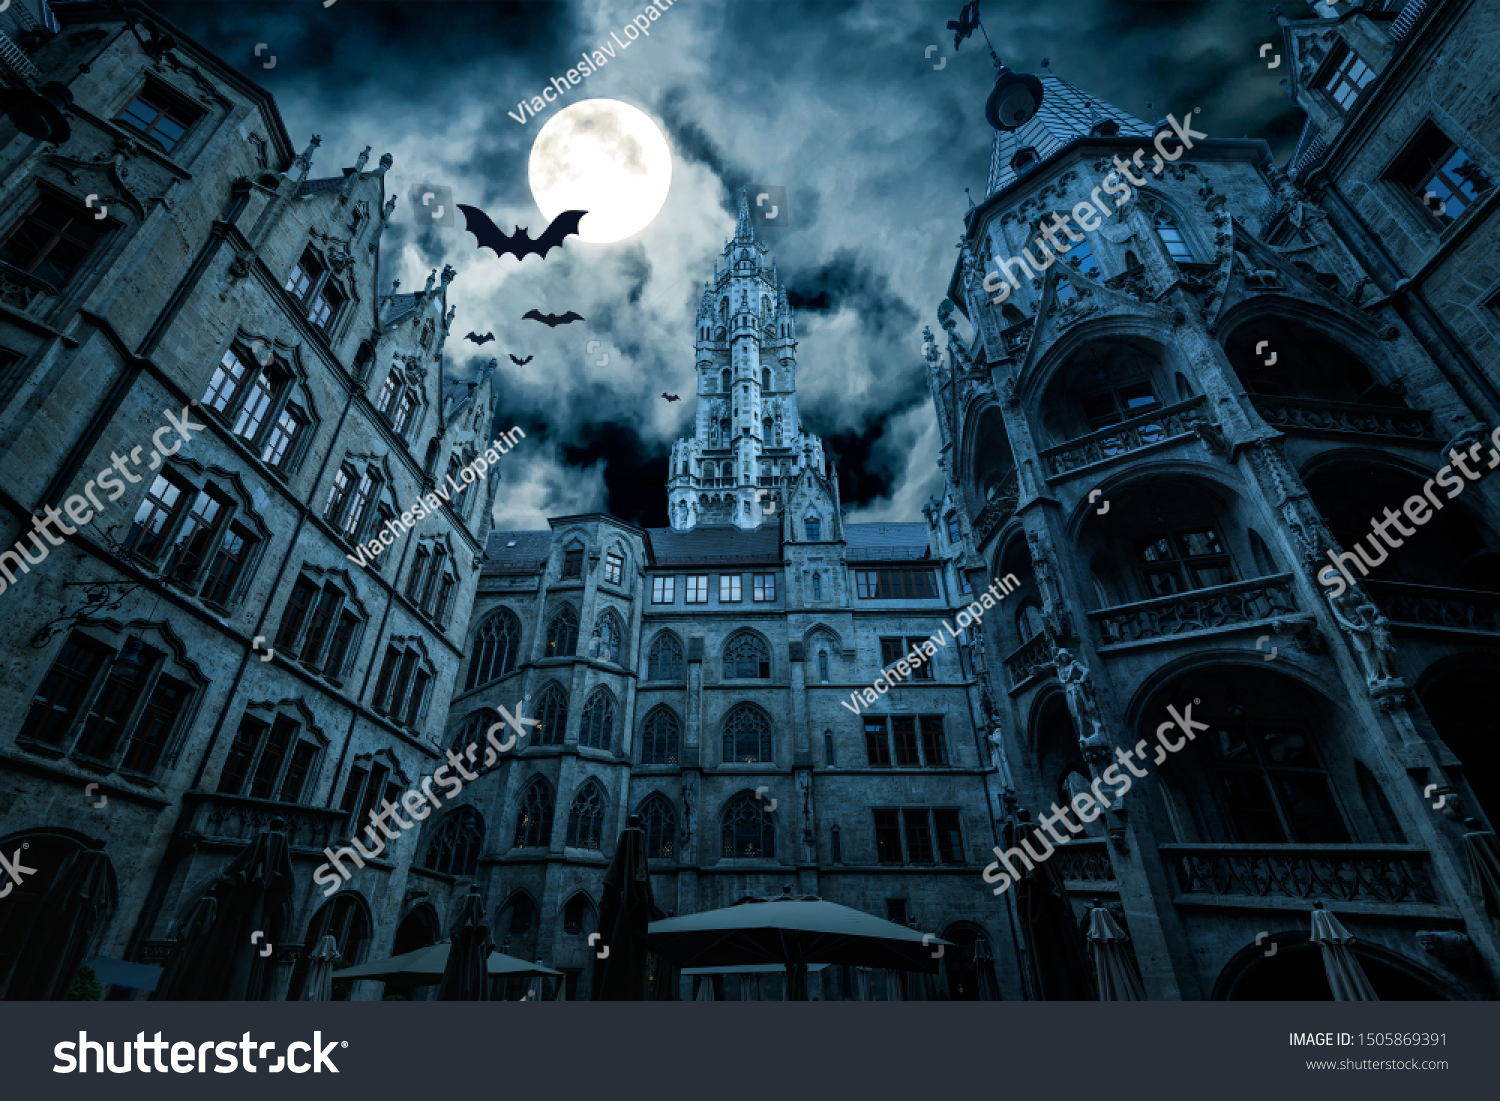 Marienplatz at night, Munich, Germany. Creepy mystery view of dark Gothic Town Hall with bats. Old spooky castle or palace in full moon. Scary gloomy scene with horror and terror for Halloween theme. #1505869391